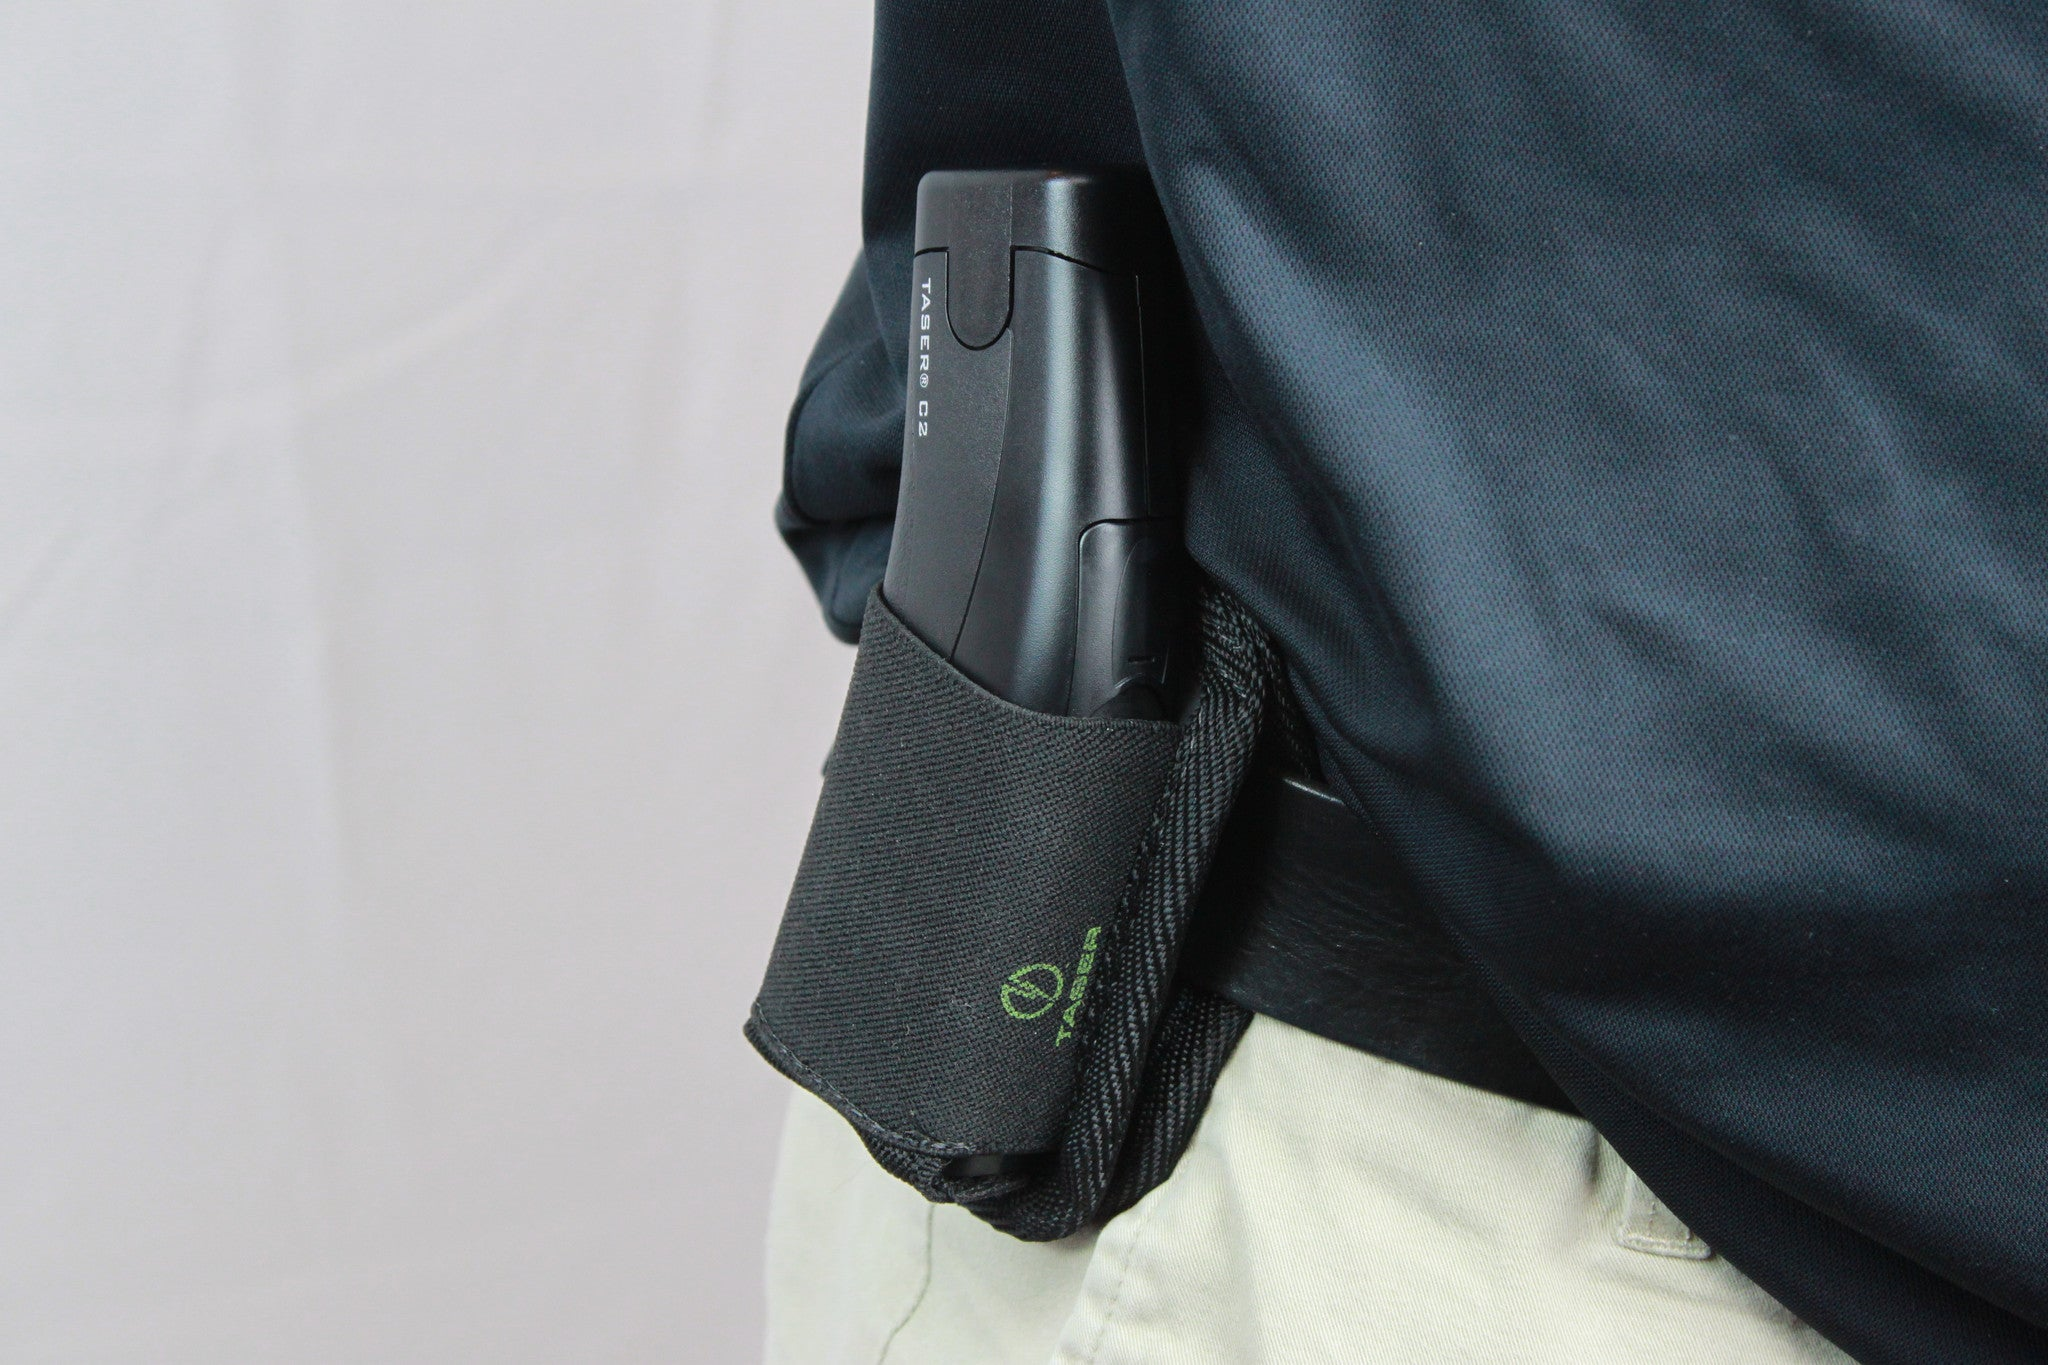 Taser Bolt (Formerly the C2) OWB Sticky Holster